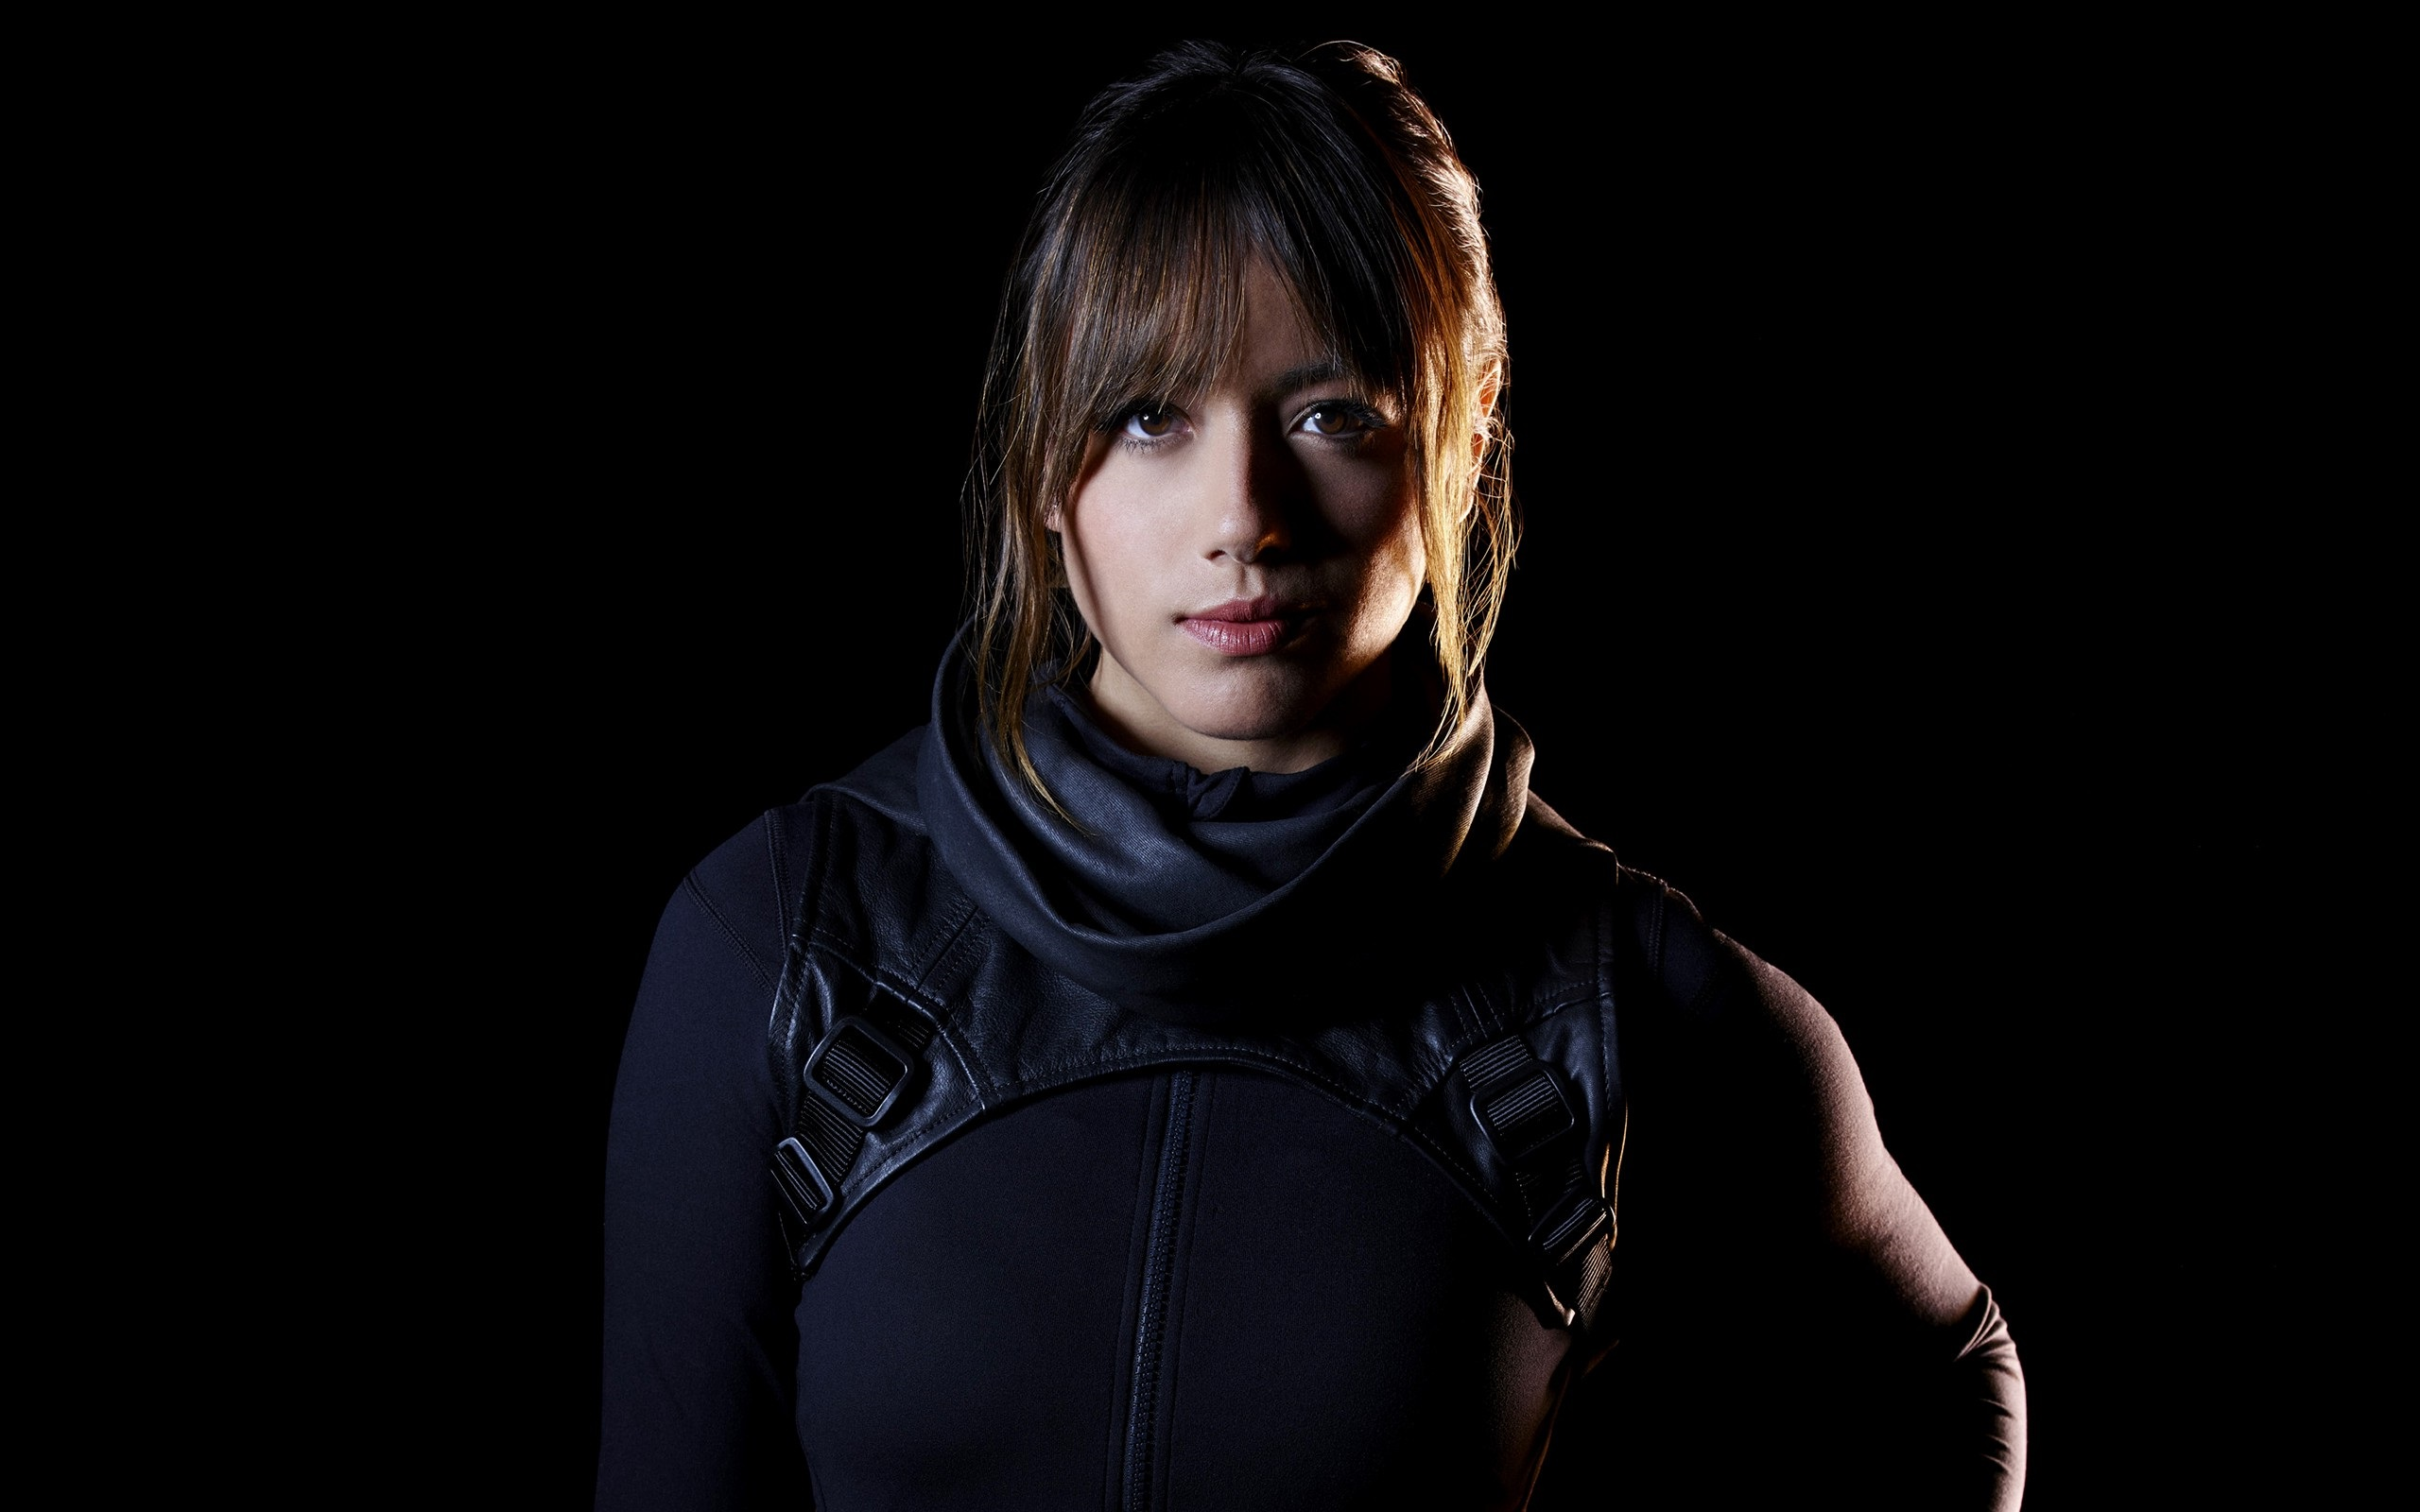 official photos 65626 47348 Chloe Bennet, Agents of S.H.I.E.L.D. 750x1334 iPhone 8/7/6 ...